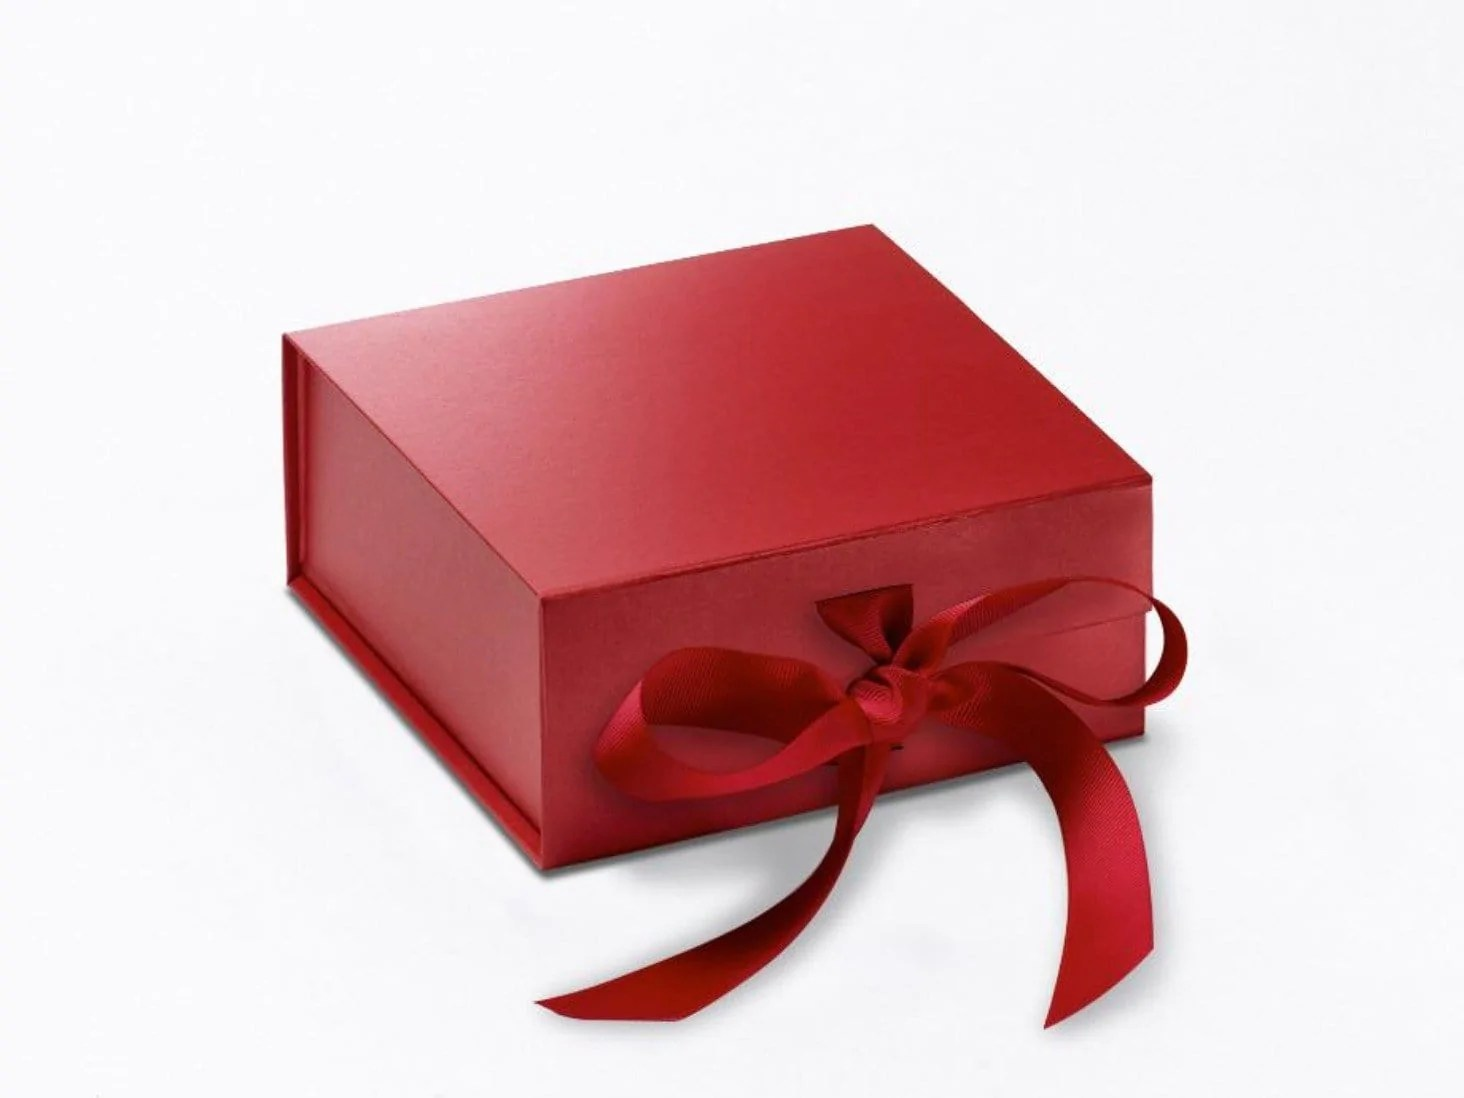 Sample Small Red Gift Box With Magnetic Closure And Ribbon